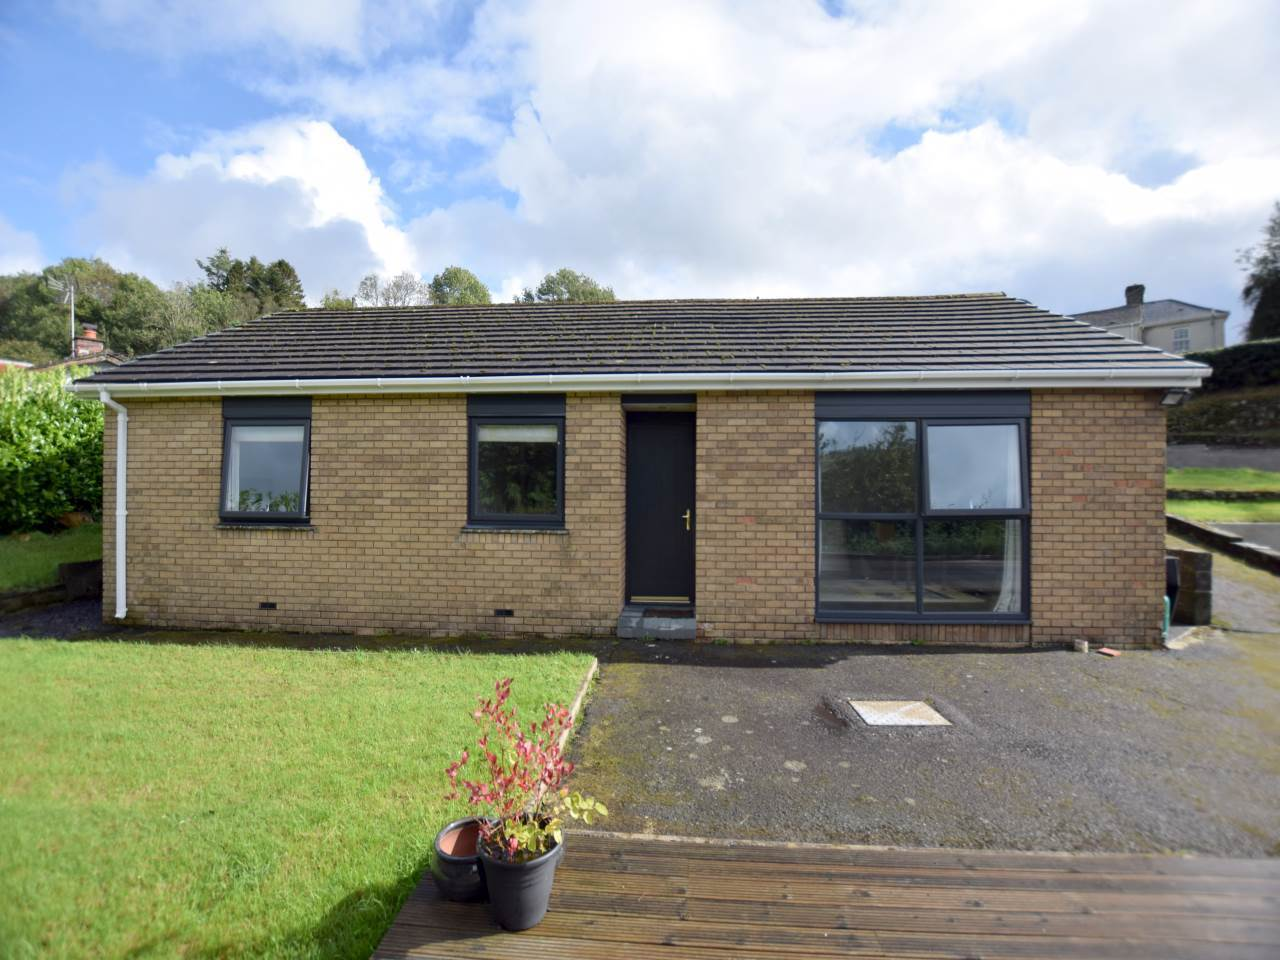 3 bed house for sale in Ysbyty Ystwyth , Ystrad Meurig , SY25